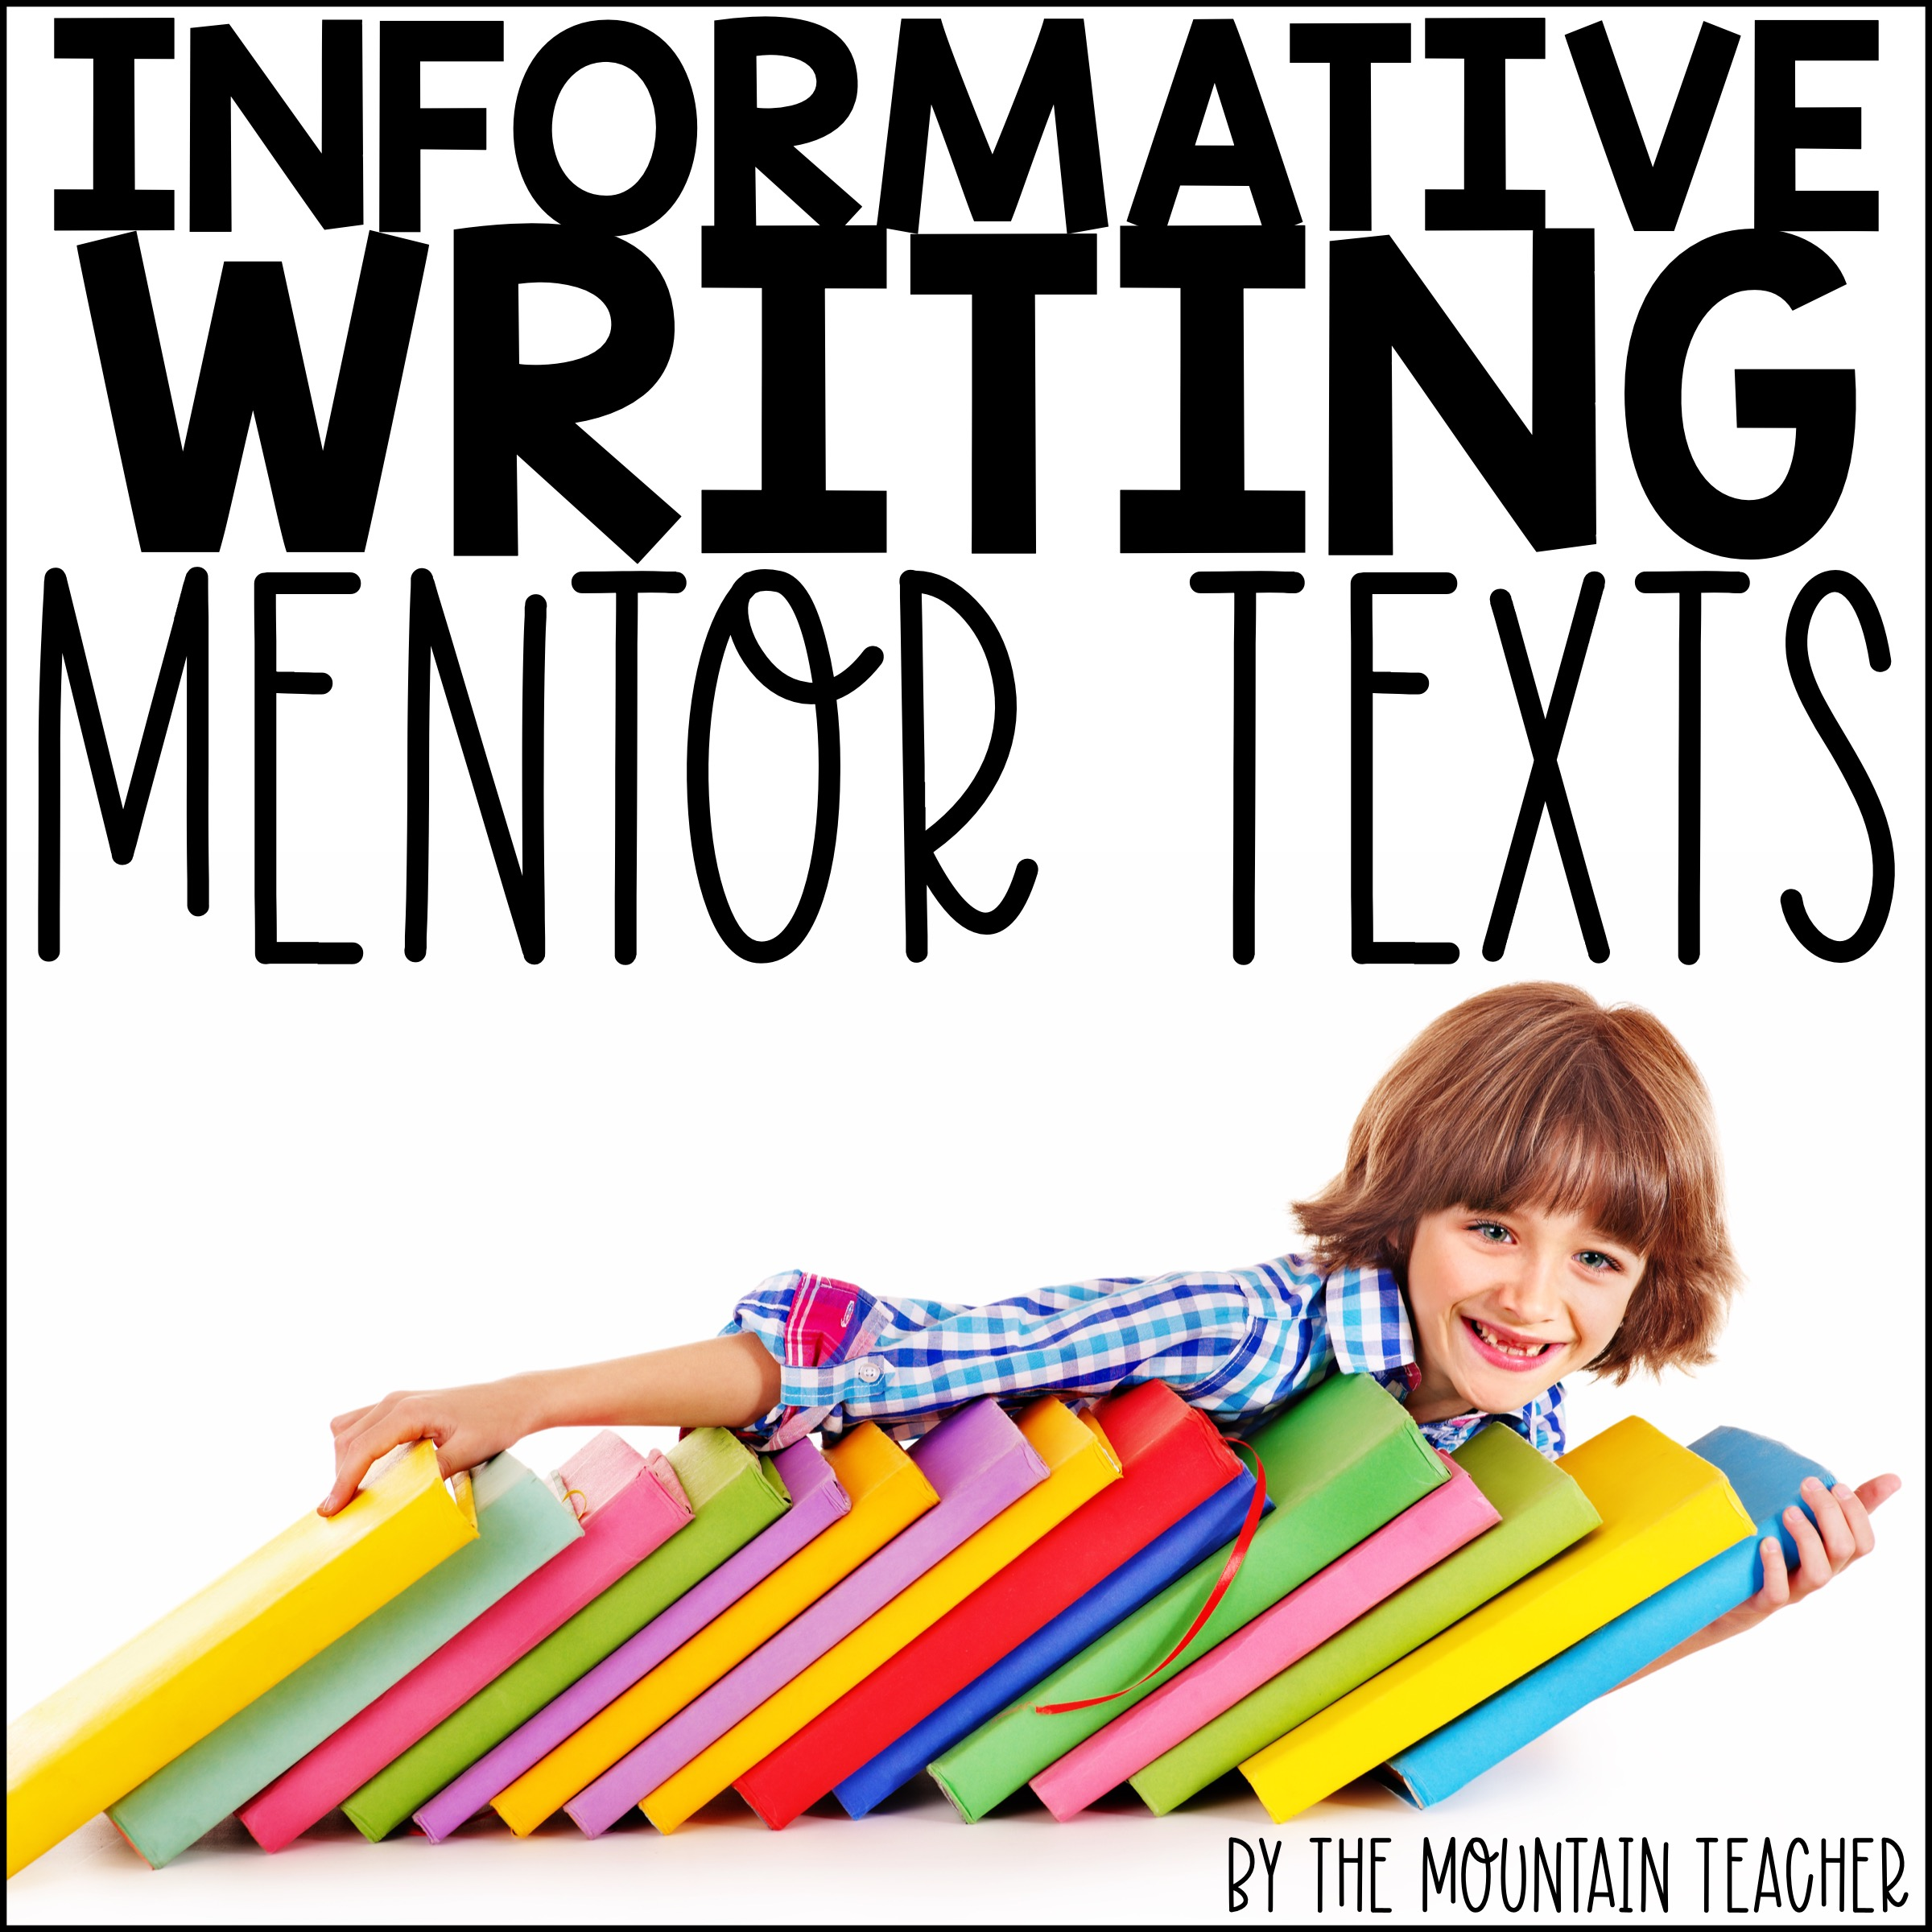 Informative Writing Mentor Texts and Resources